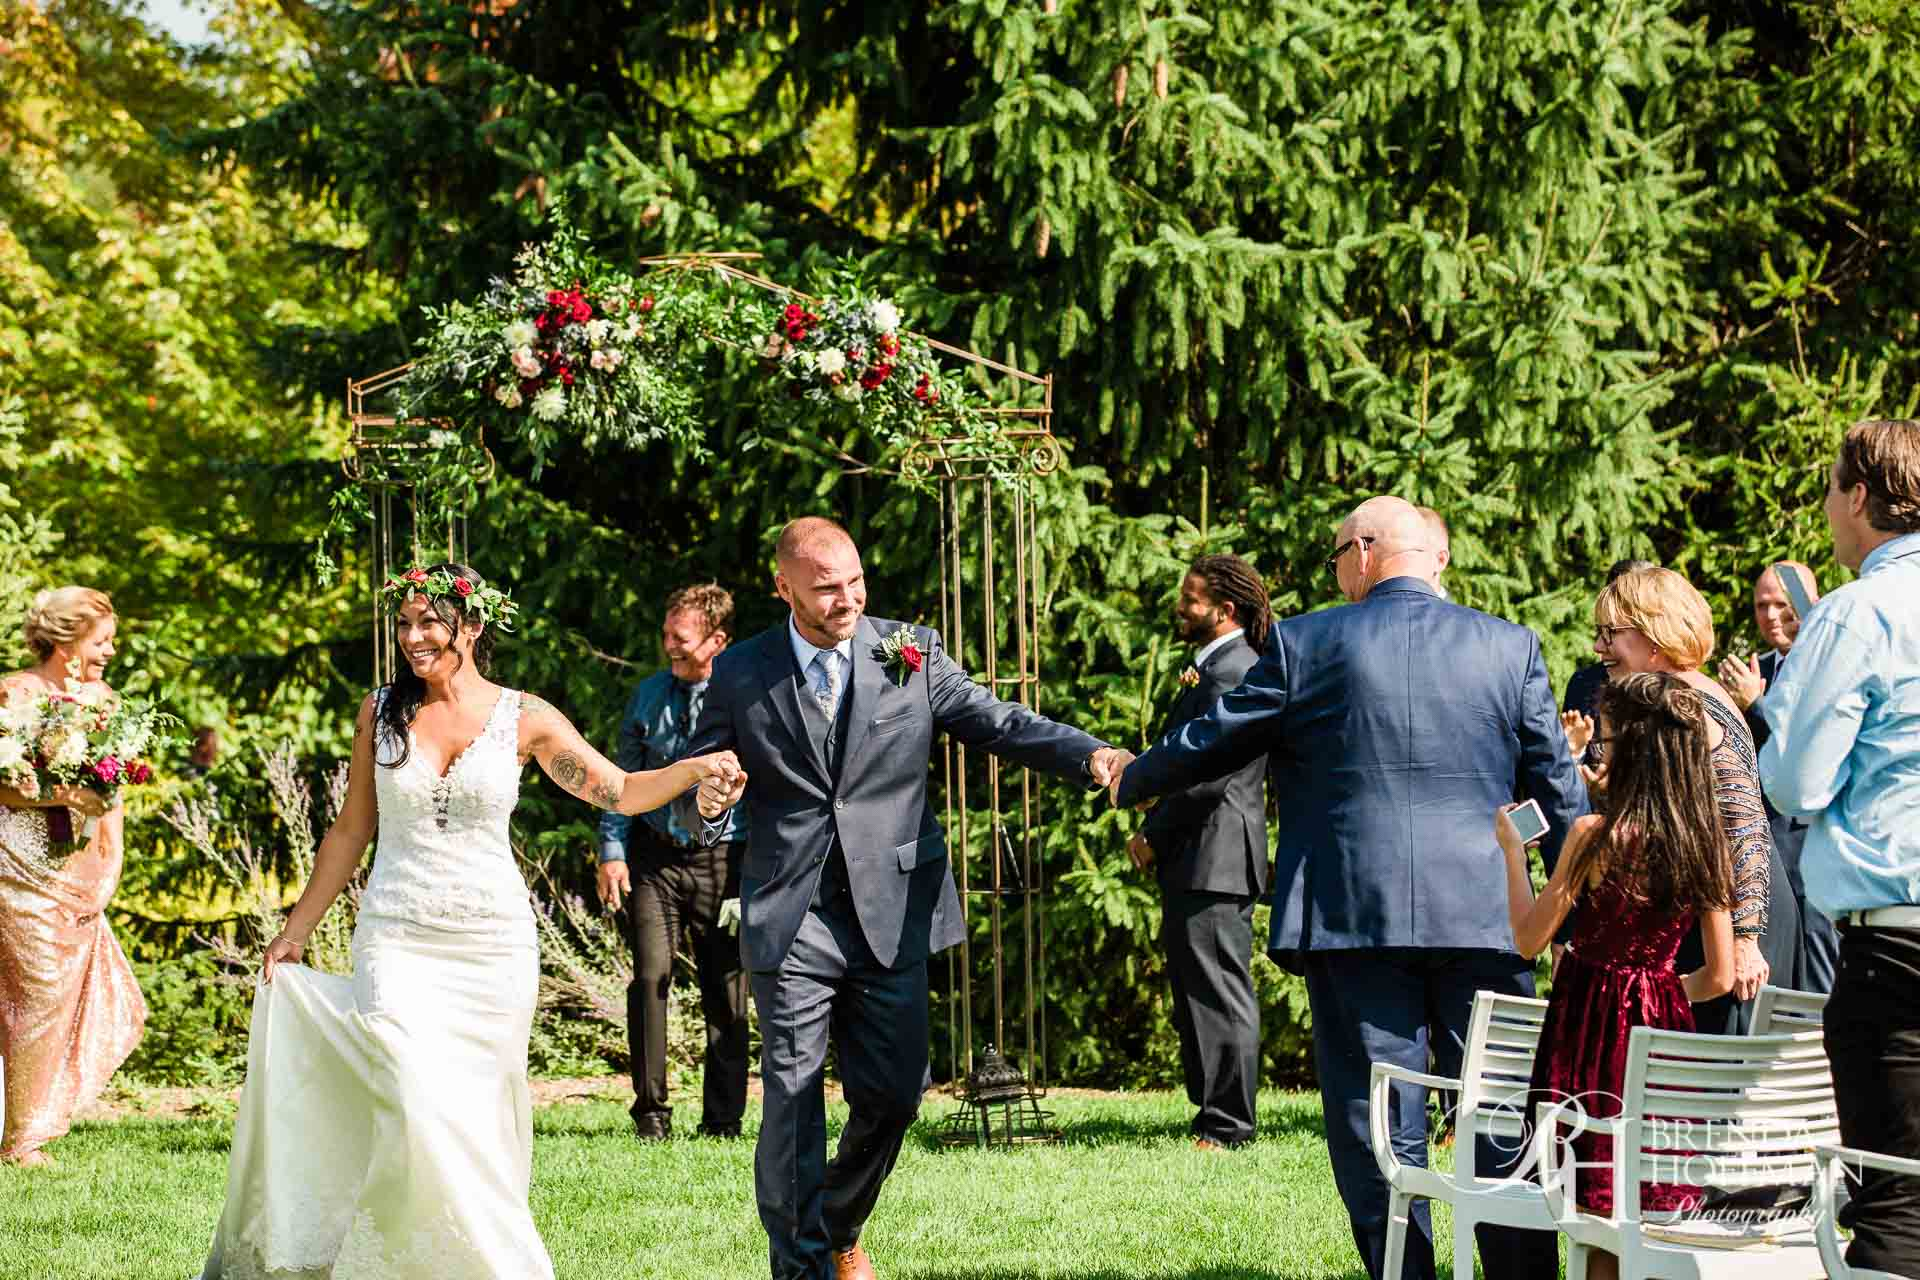 Frederik Meijer Gardens BOB Eve Nightclub Wedding 24